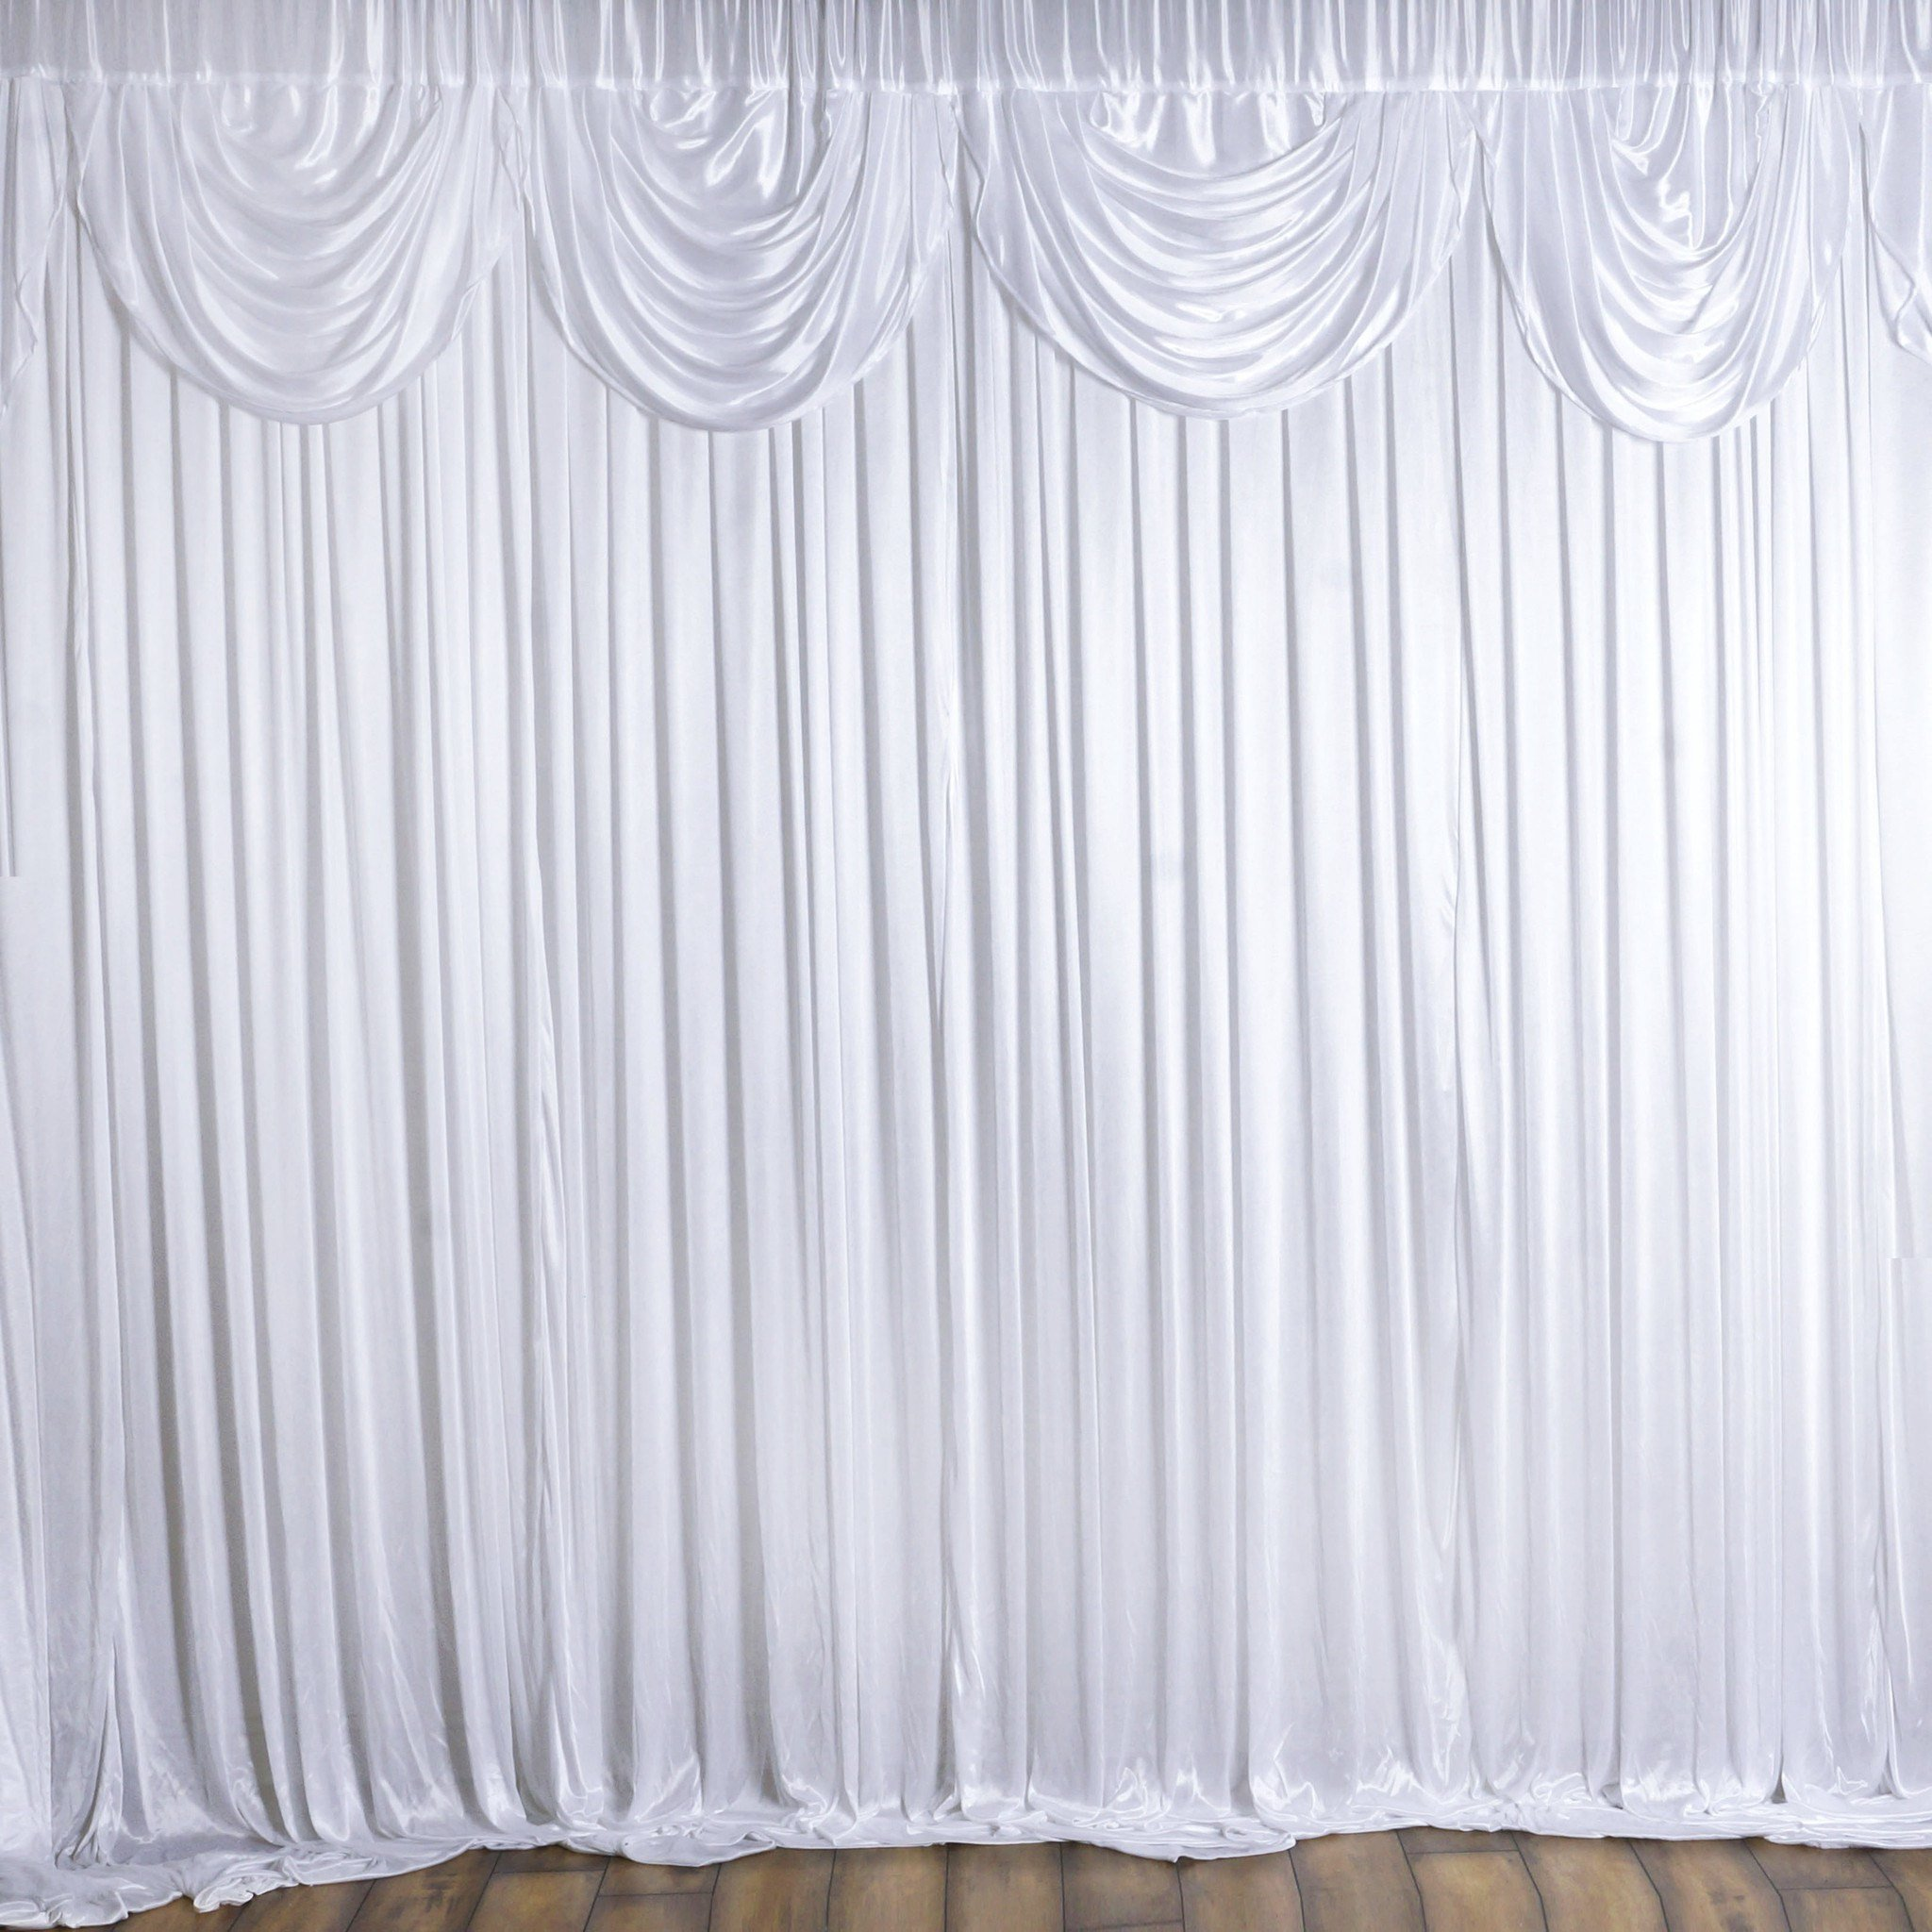 20ftx10ft Classic Double Drape Backdrop Decoration - White | eFavorMart